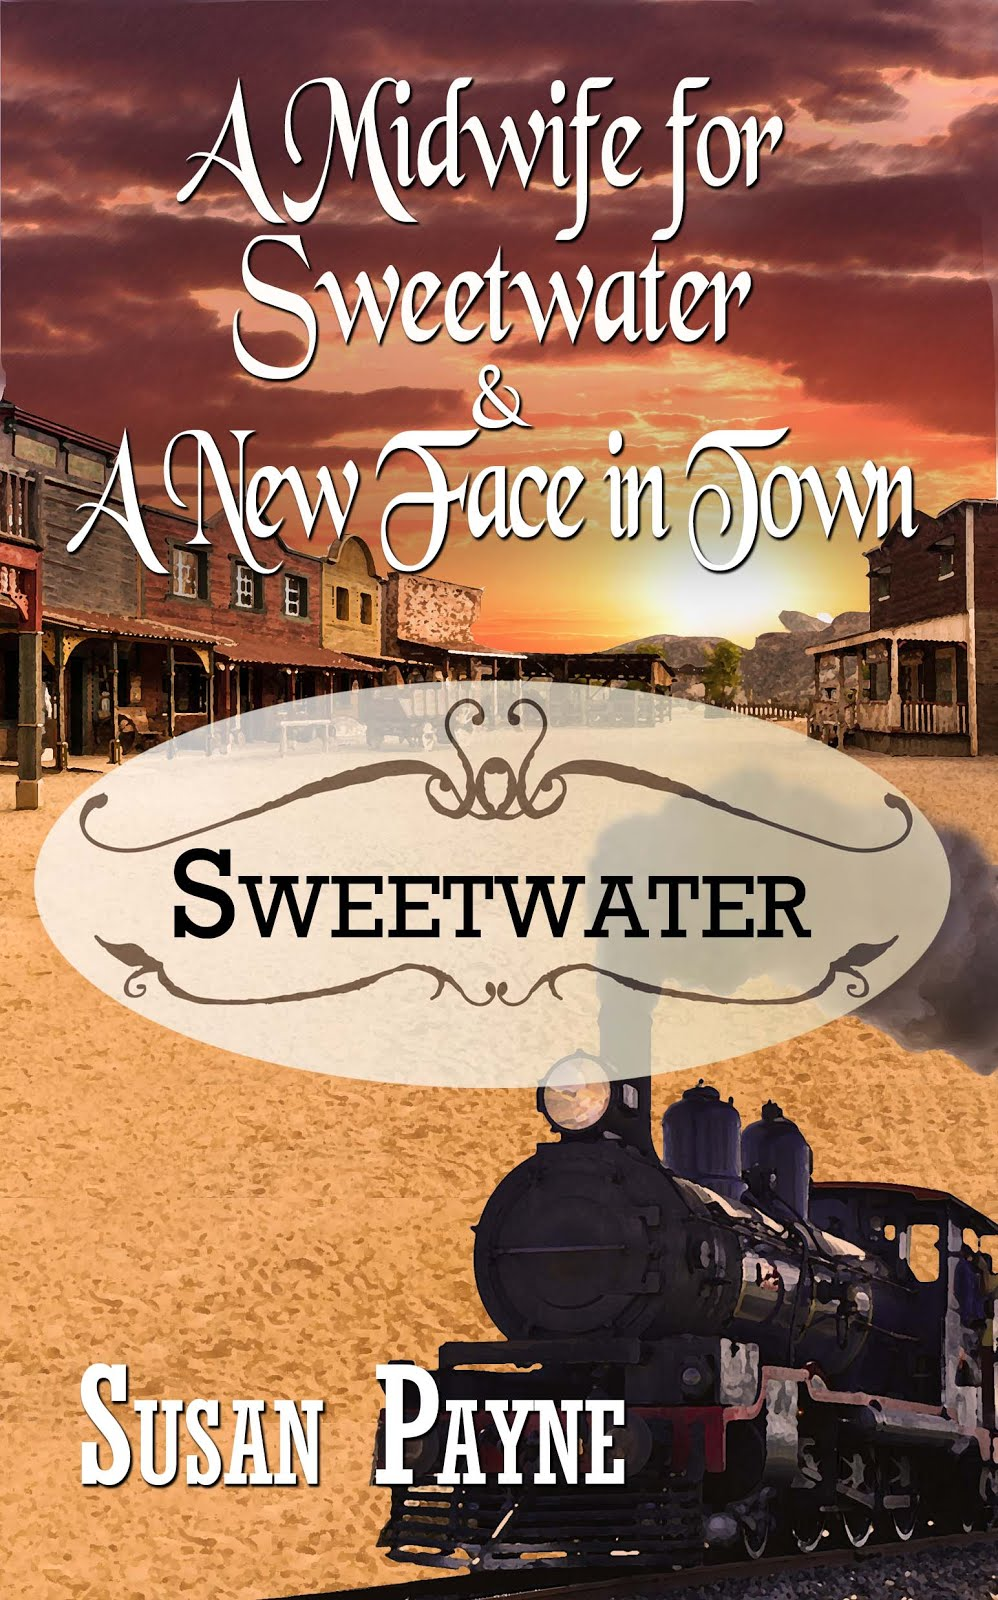 A Midwife for Sweetwater